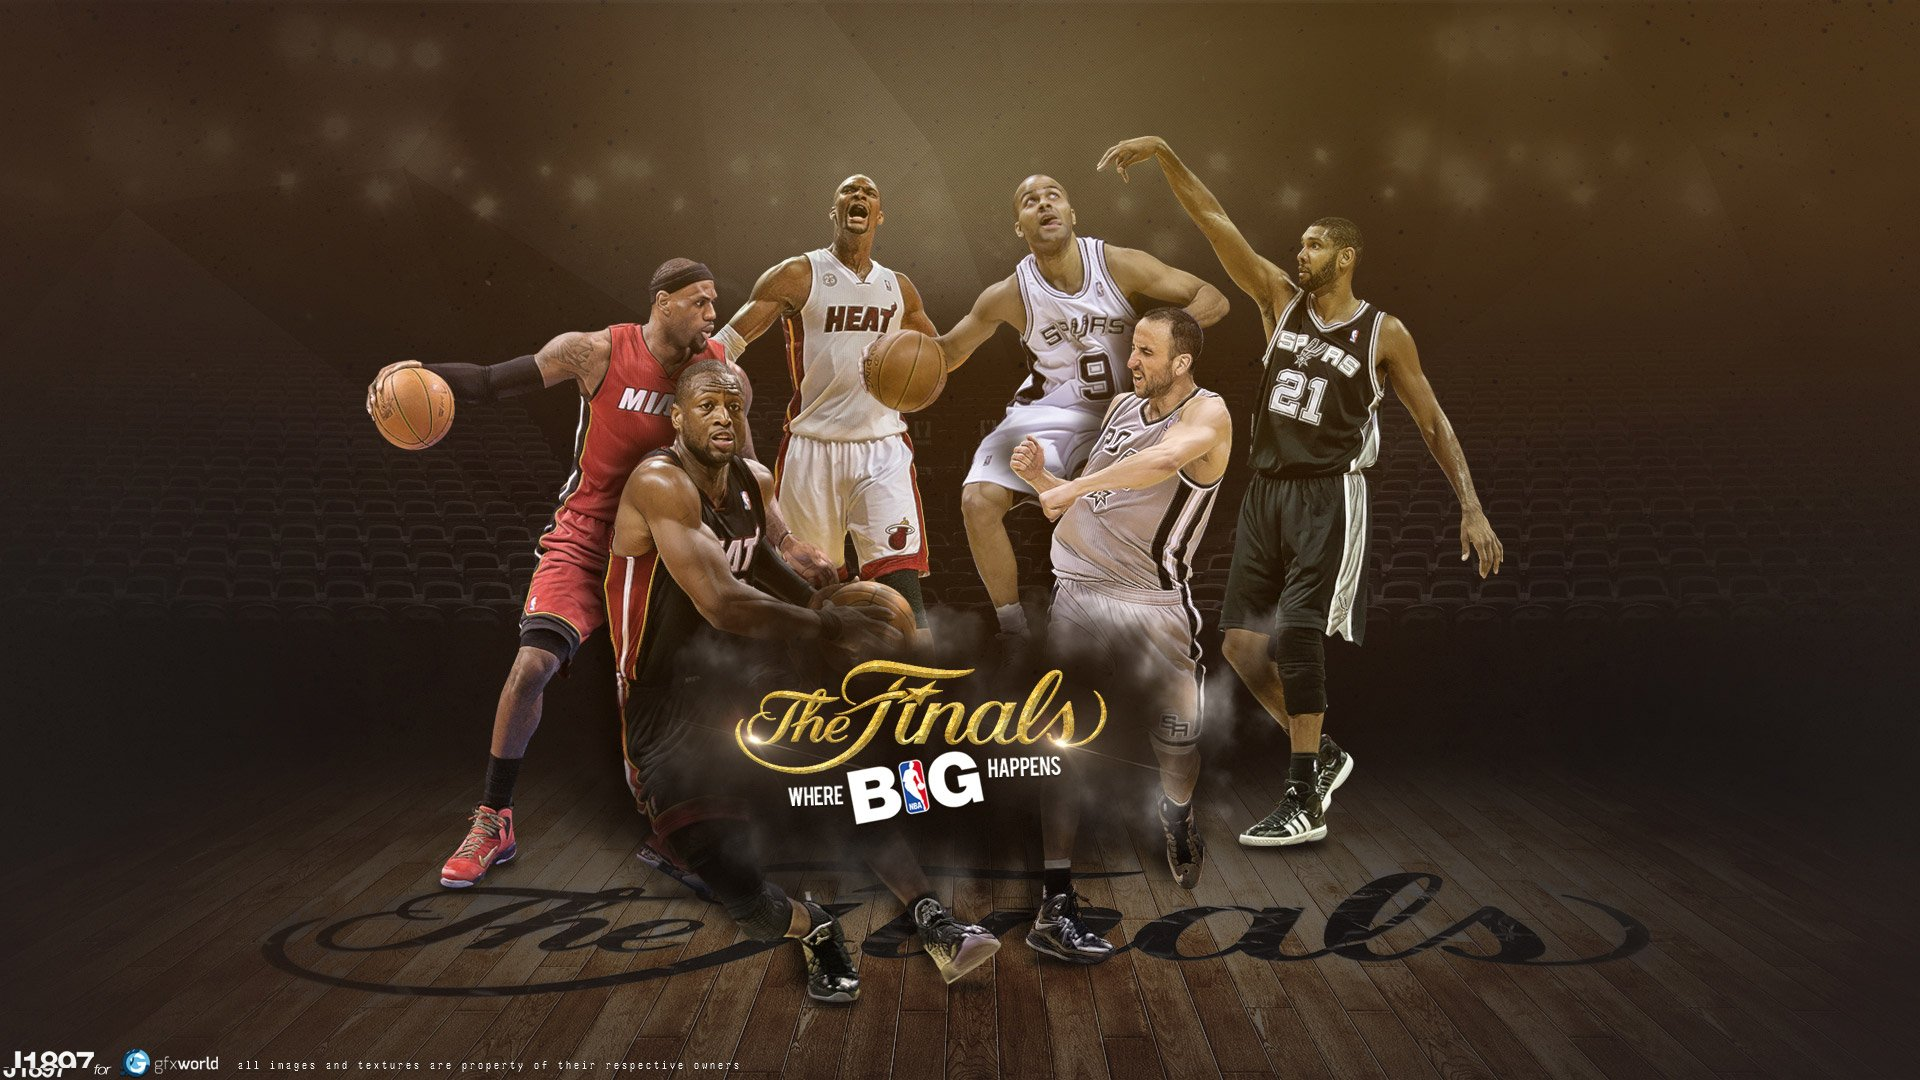 wallpaper wallpapers sports team players nba wallpaper wallpaper more 1920x1080